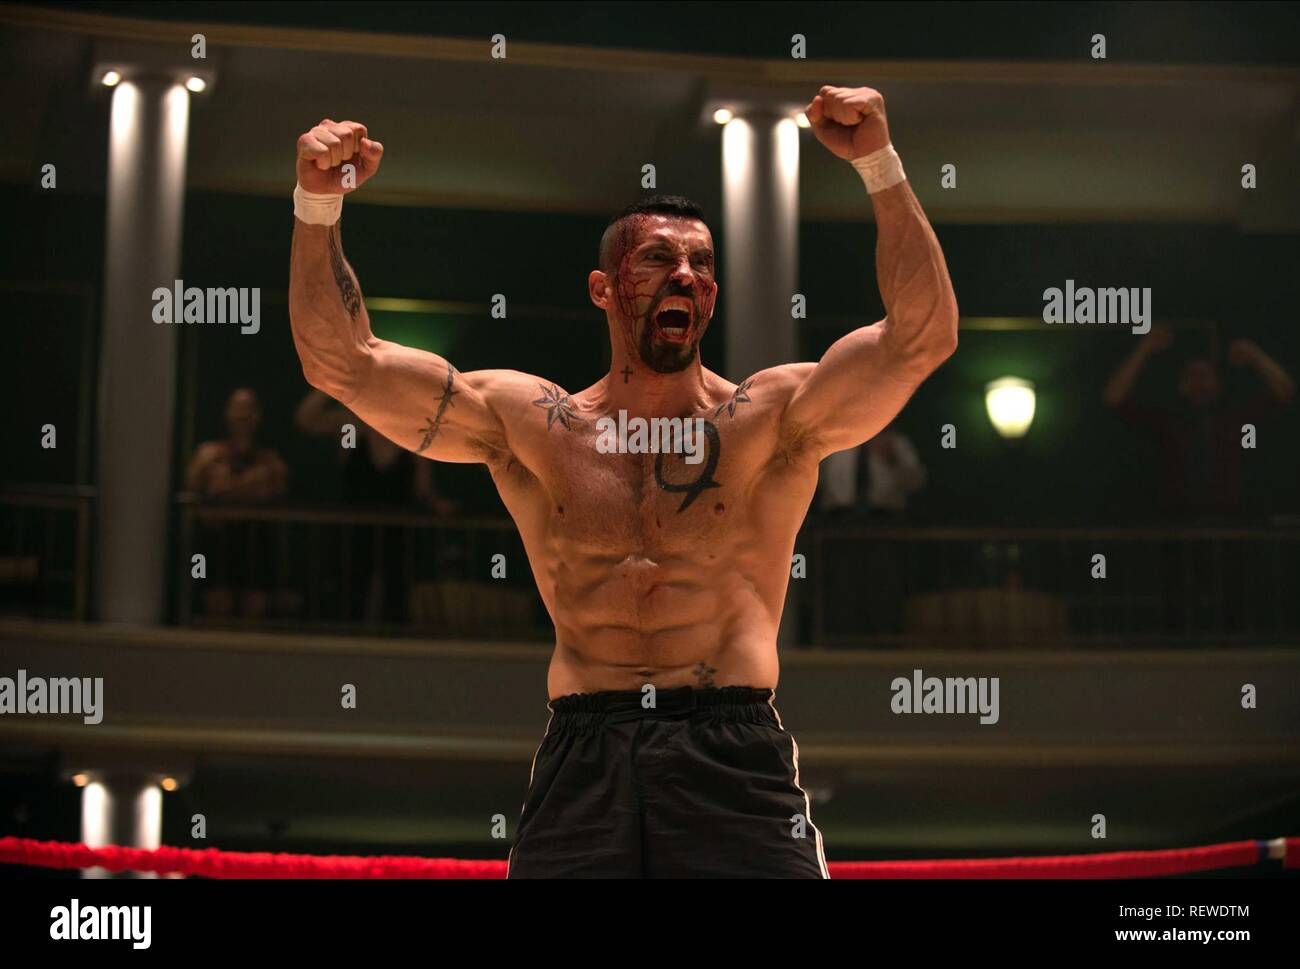 SCOTT ADKINS BOYKA: UNDISPUTED IV (2016) Stock Photo